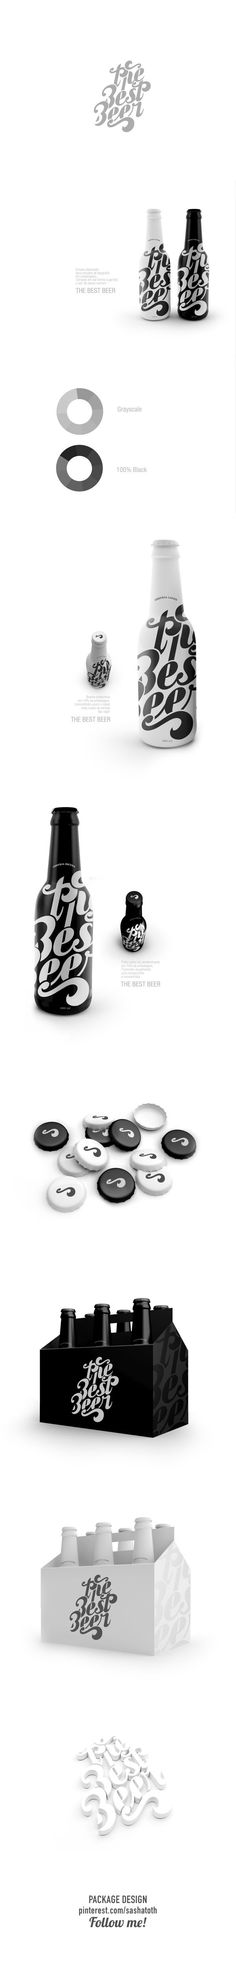 The Best Beer Lettering and Packaging (concept) by Renan Vizzotto, via Behance